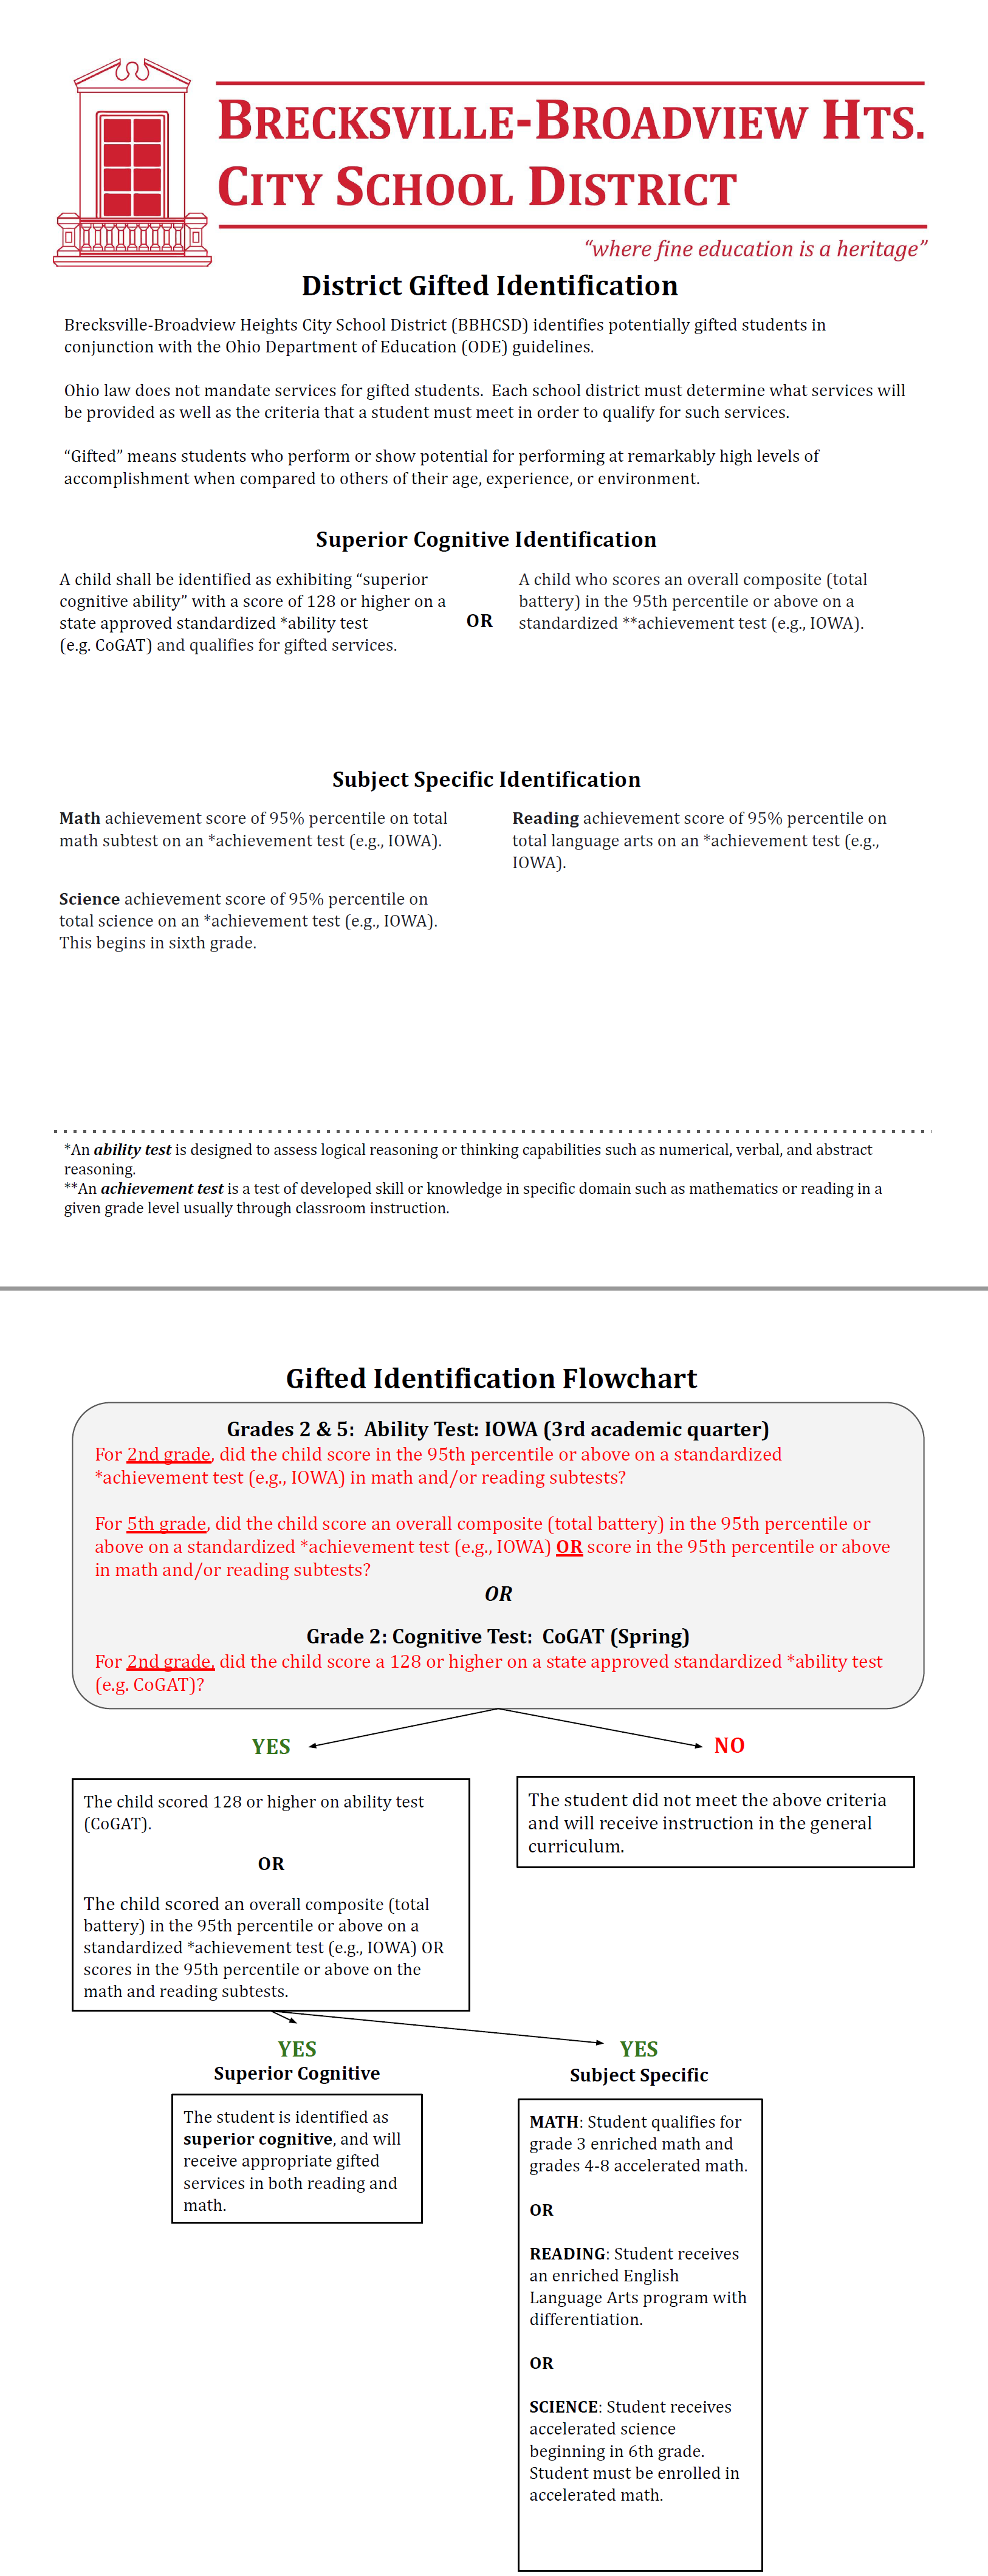 Gifted Identification Flowchart